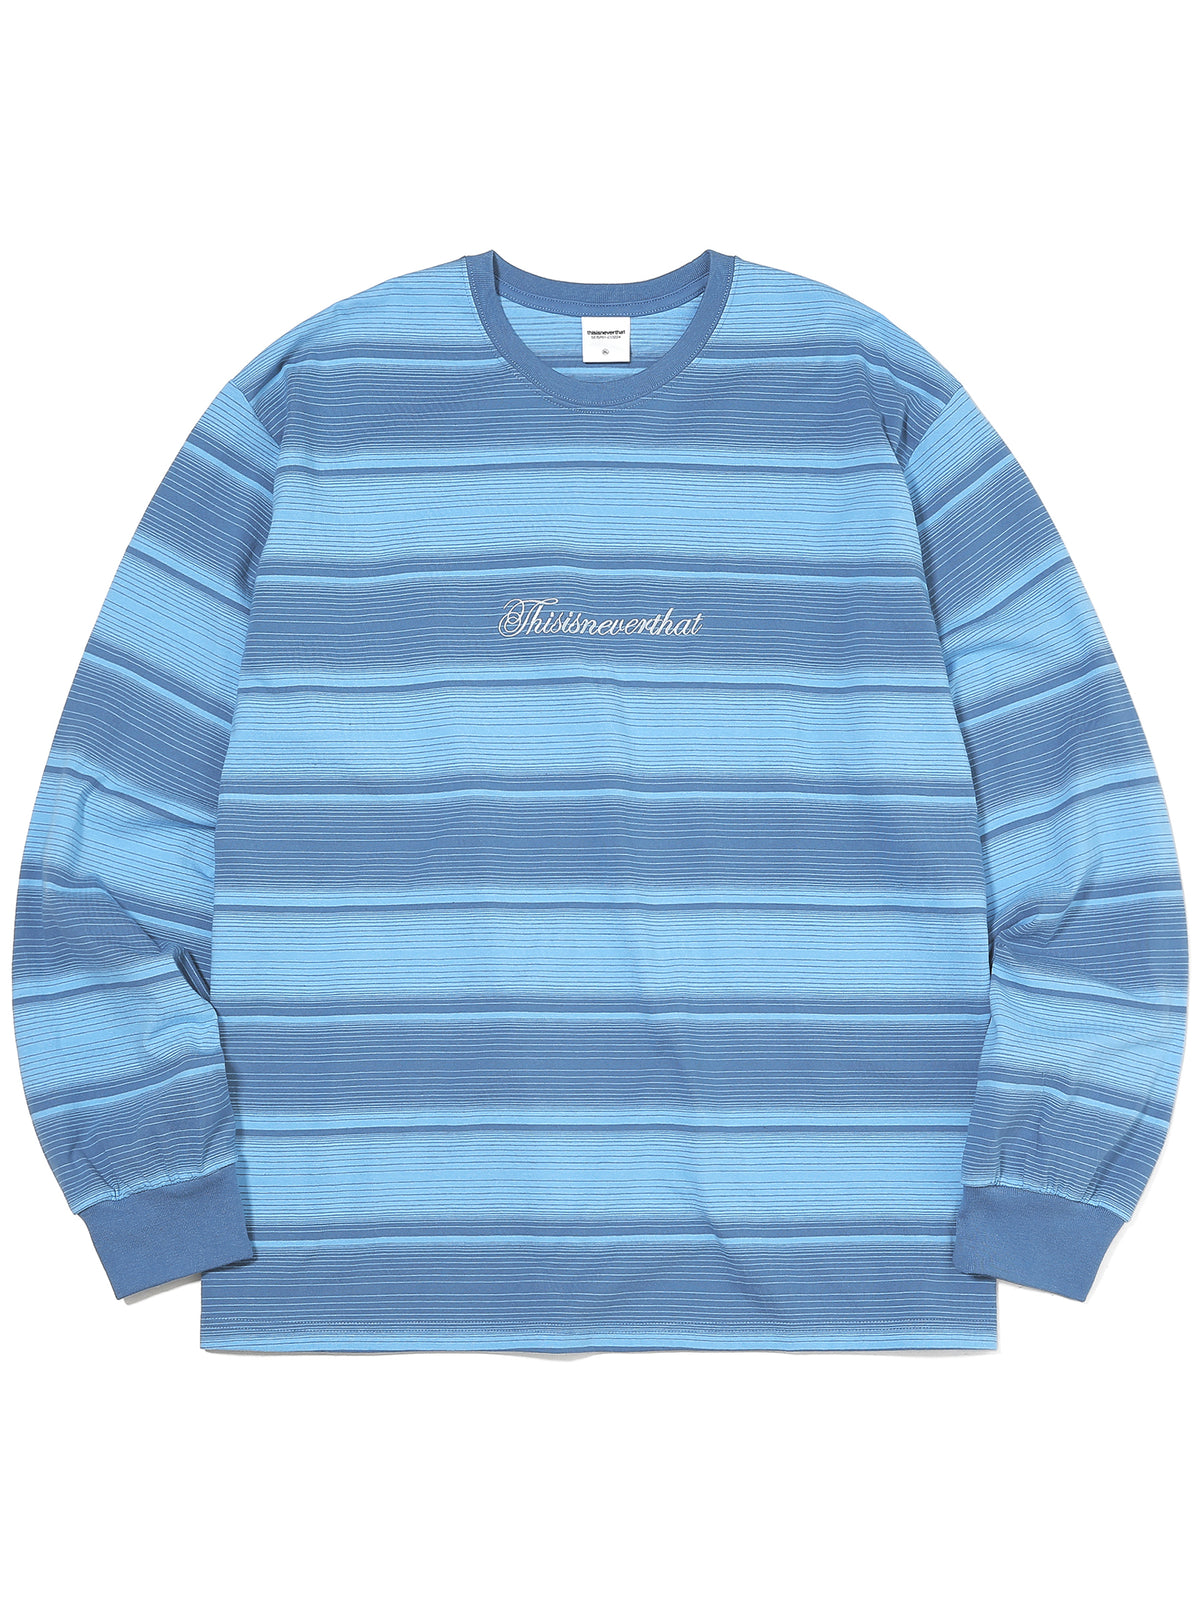 Script Striped L/SL Top - thisisneverthat